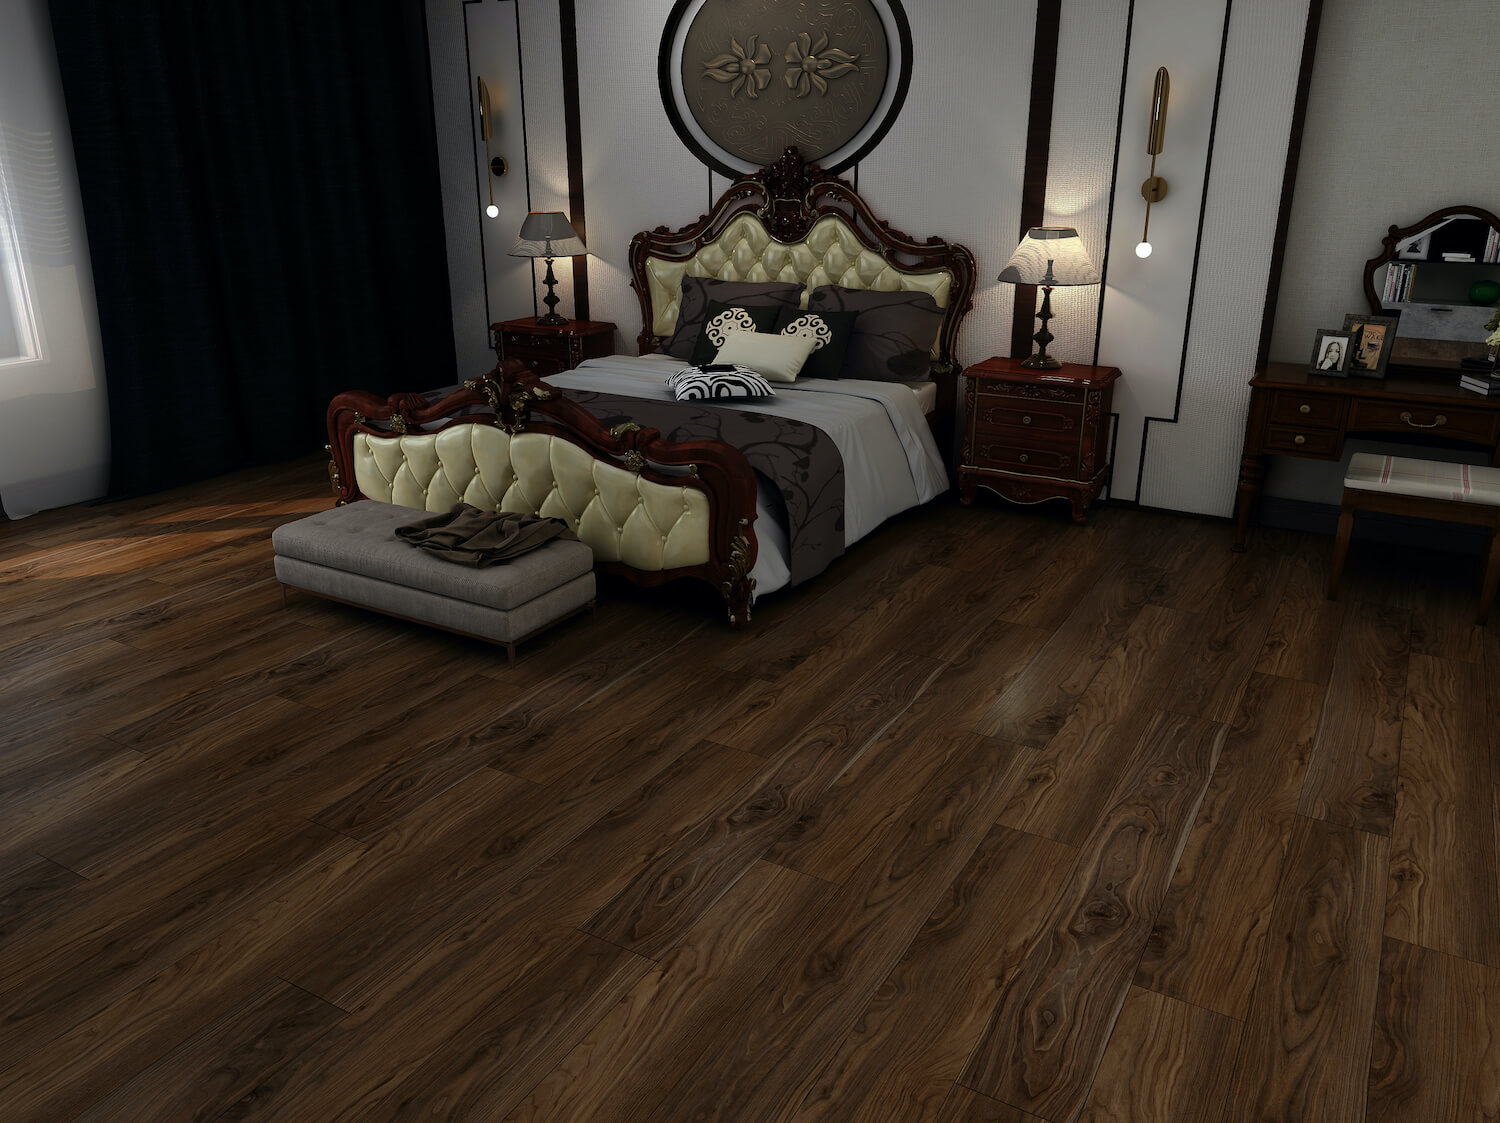 Black Walnut Luxury Impervia Flooring